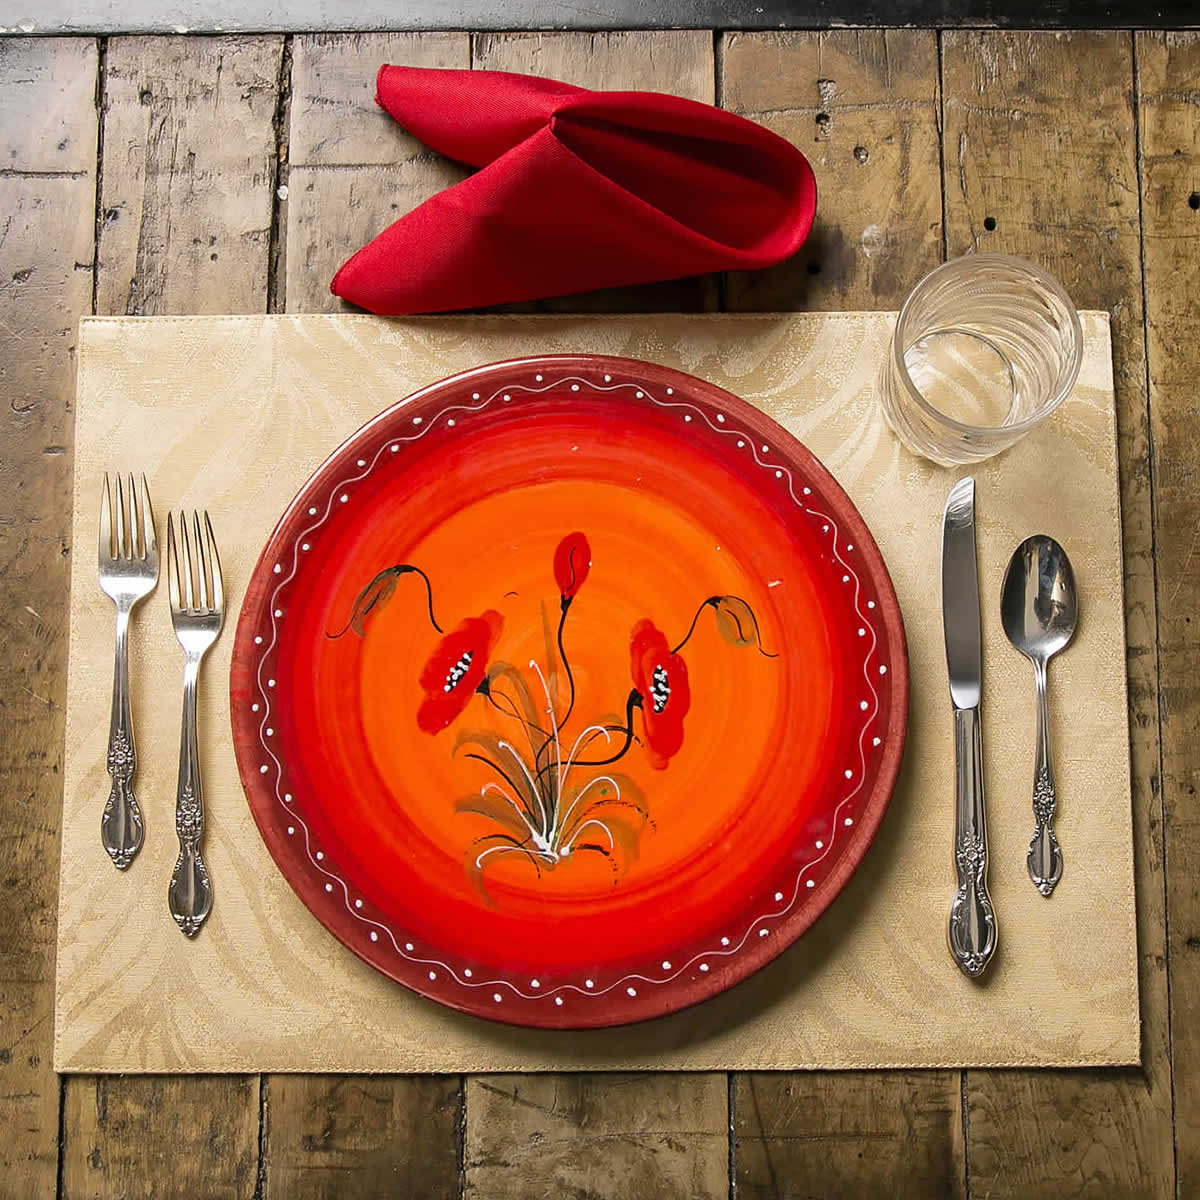 Poppies Dinner Plate (Set of 4) | I See Spain - Handcrafted Spanish ...